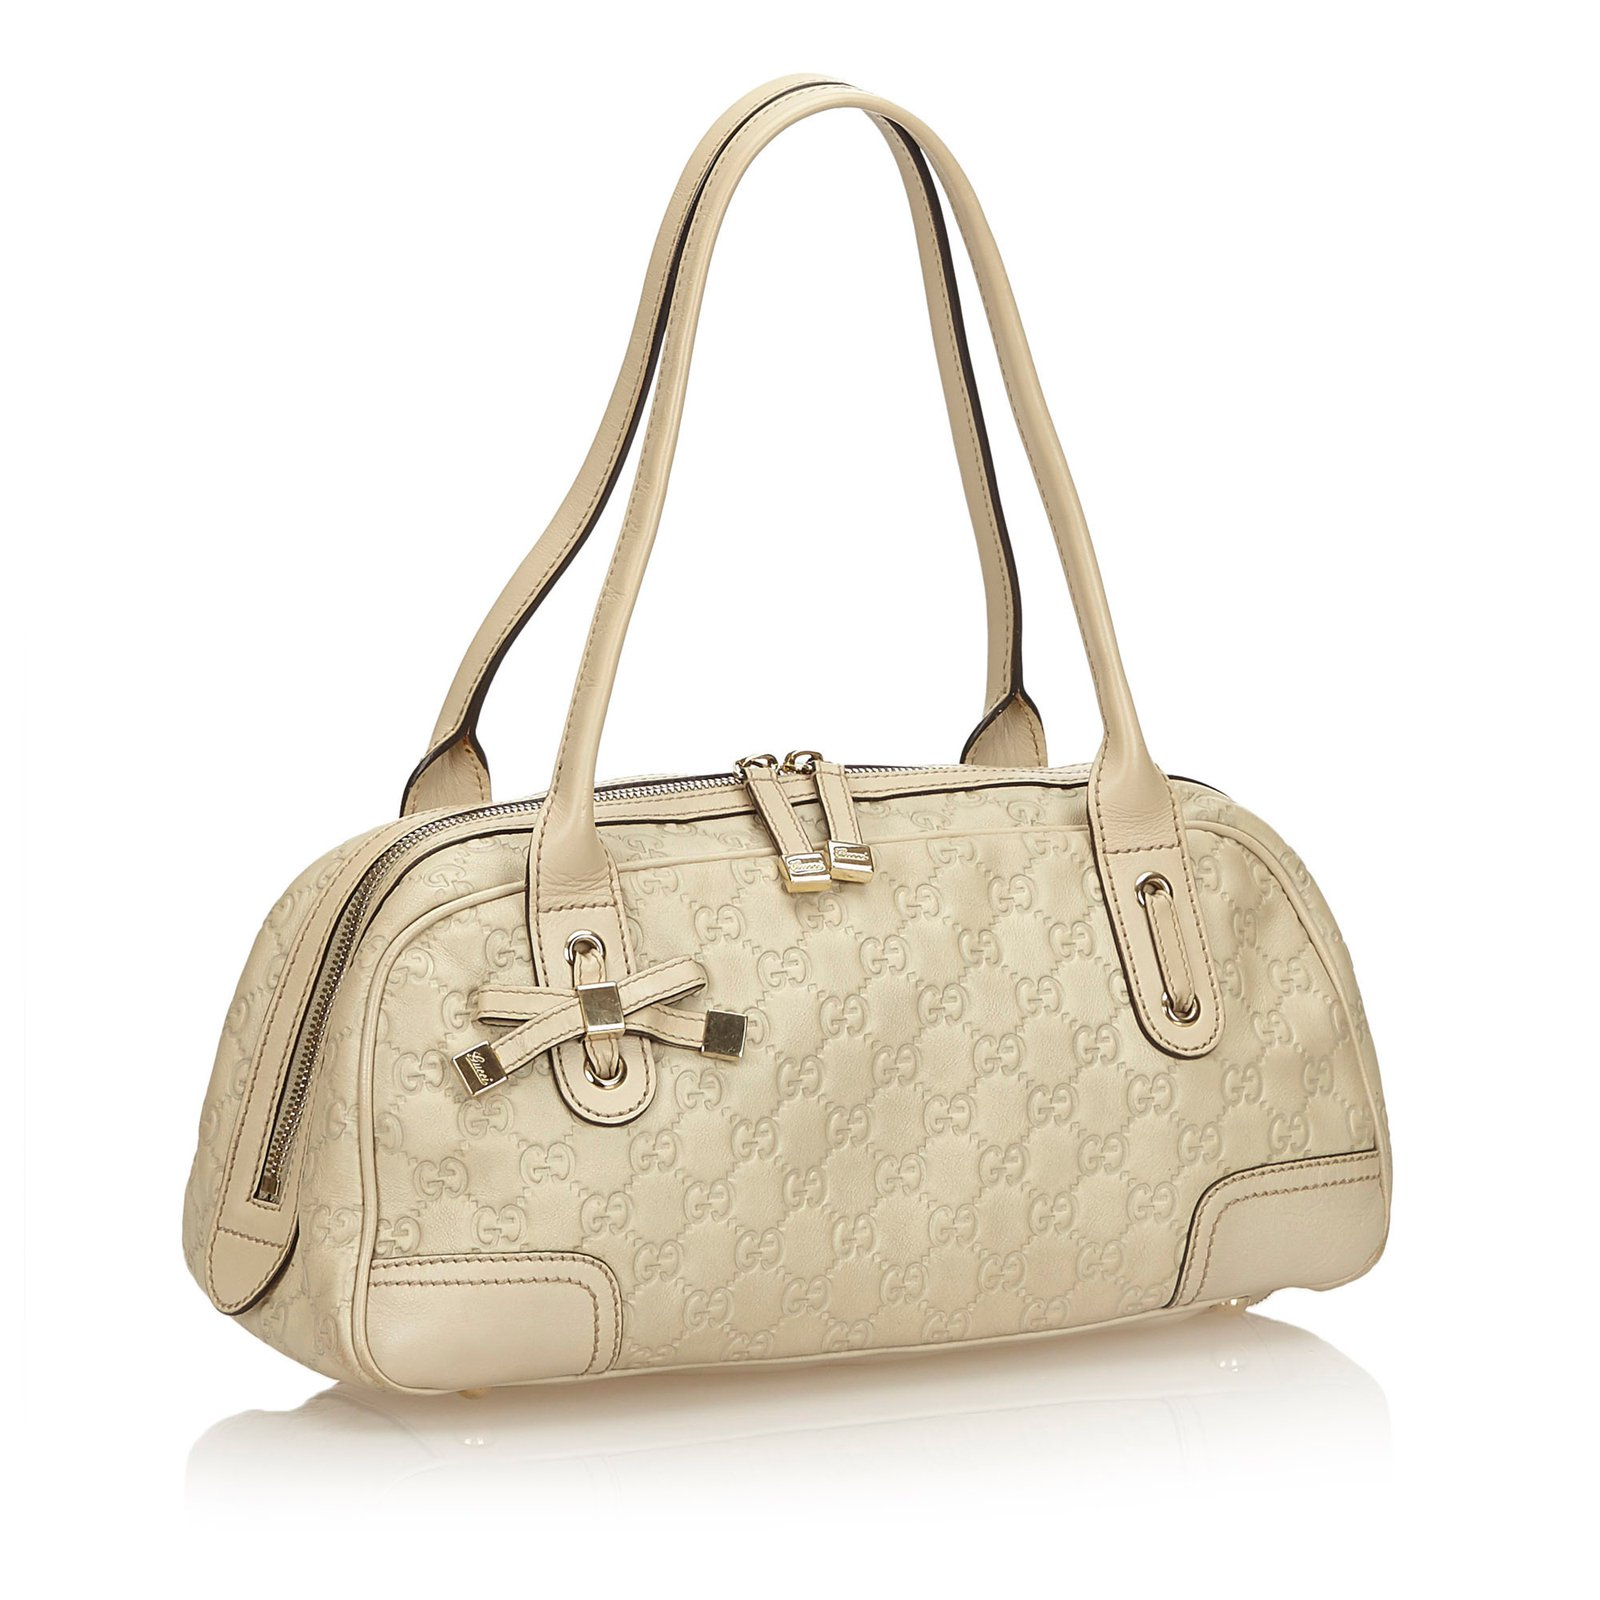 4efe6abfaac5 Gucci Guccissima Leather Princy Shoulder Bag Handbags Leather,Other ...